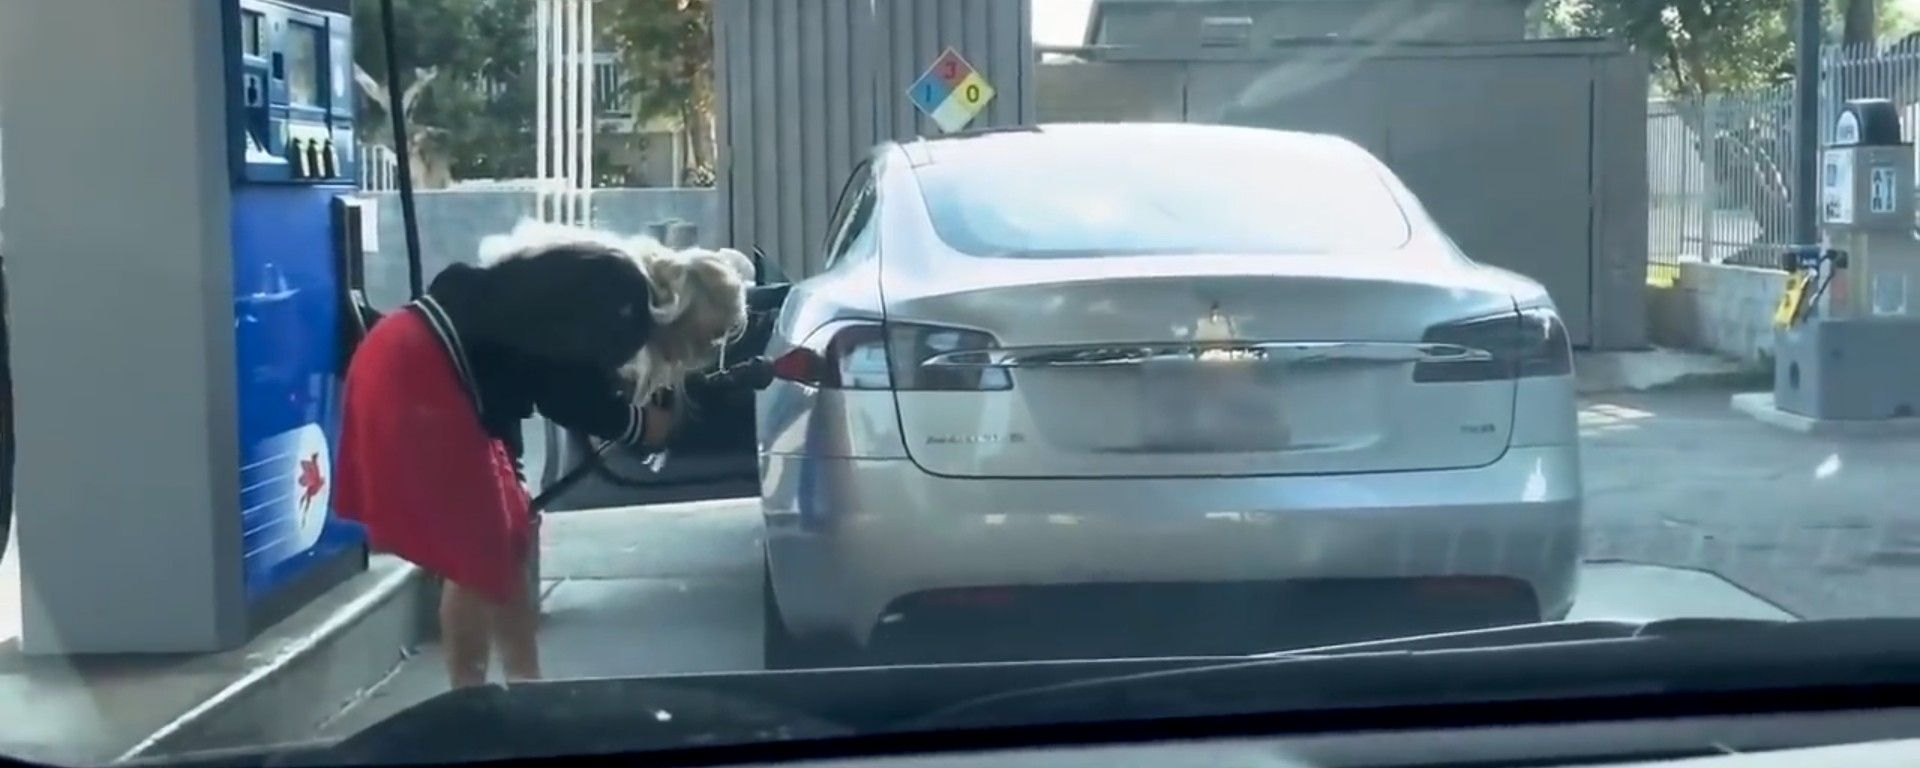 Tesla Model S: una donna bionda le fa benzina. Ecco il video